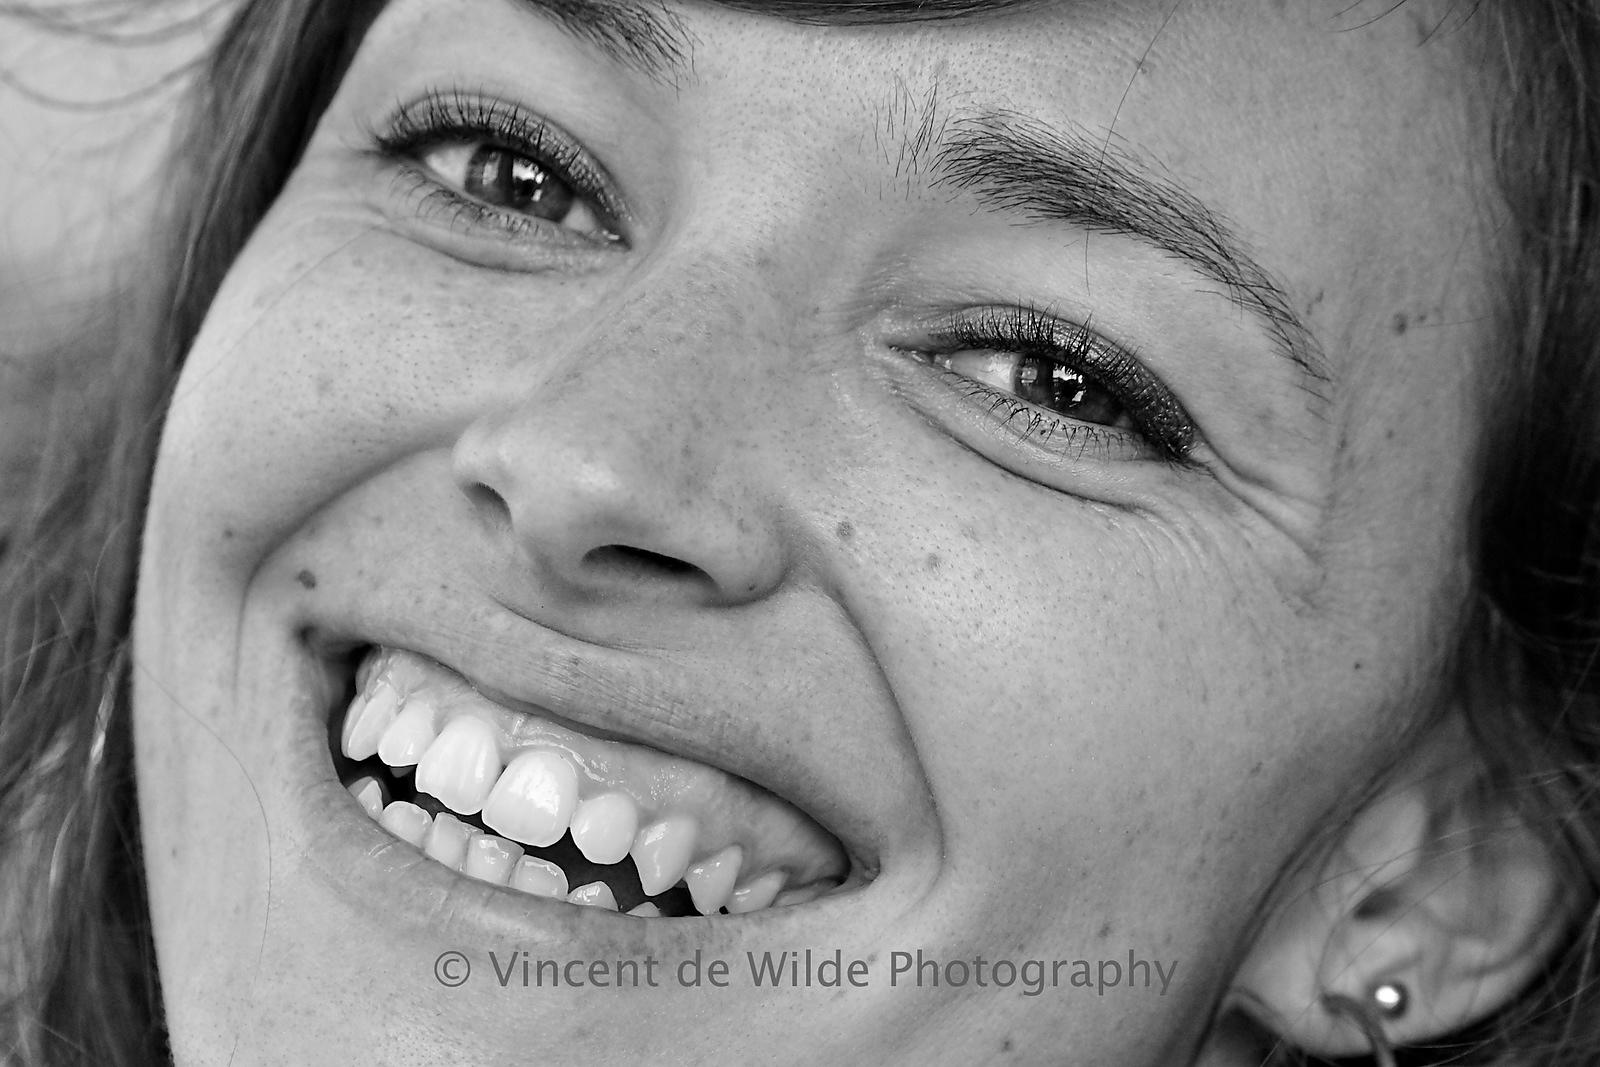 Anna (France) - Moment de Joie / Moment of Joy